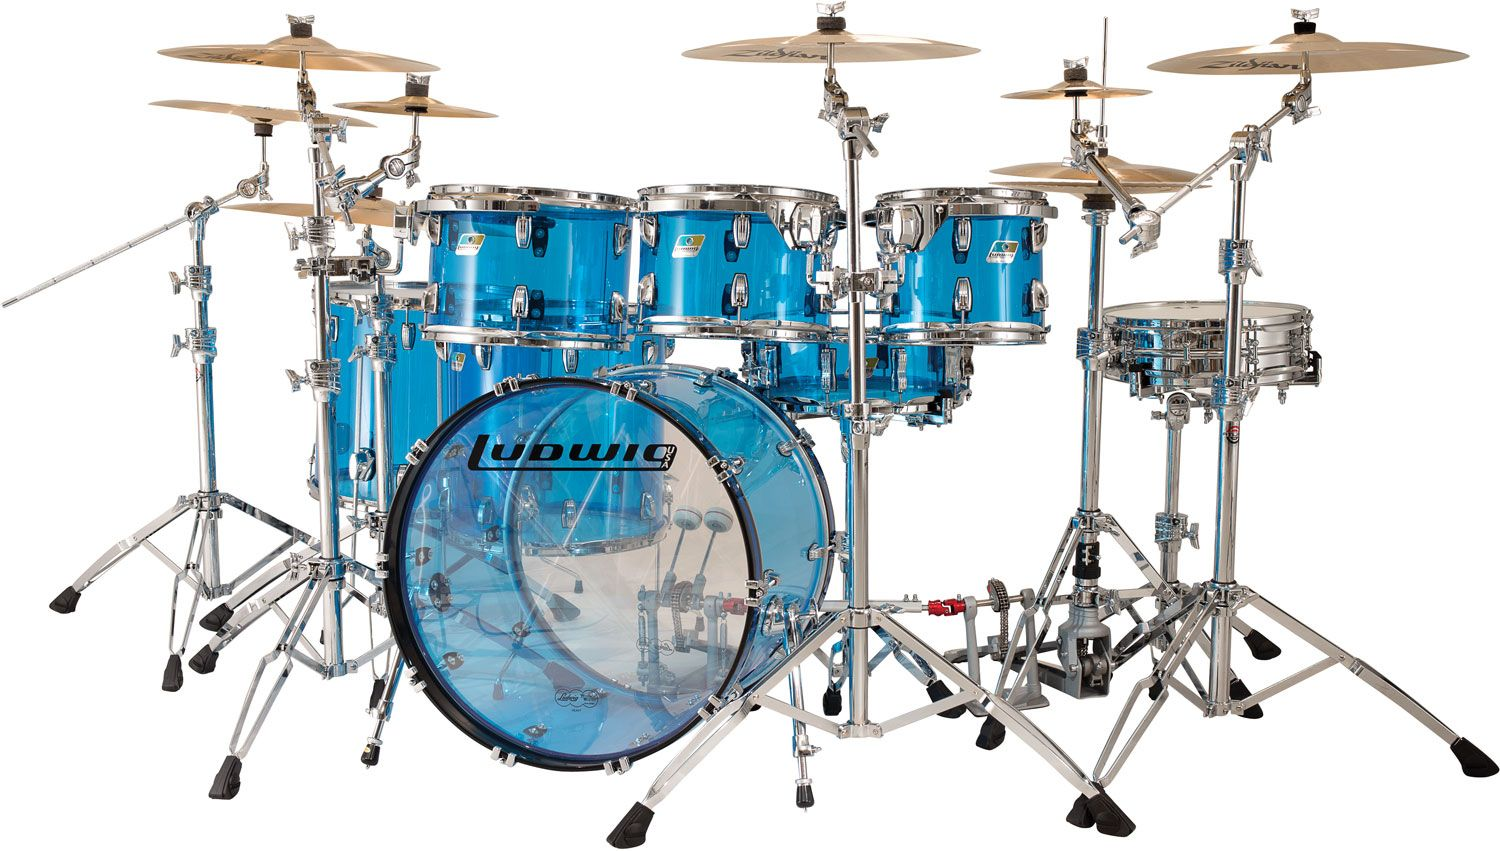 Acrylic Blue Ludwig Drum Set   Cool Drum Sets and Drums ...